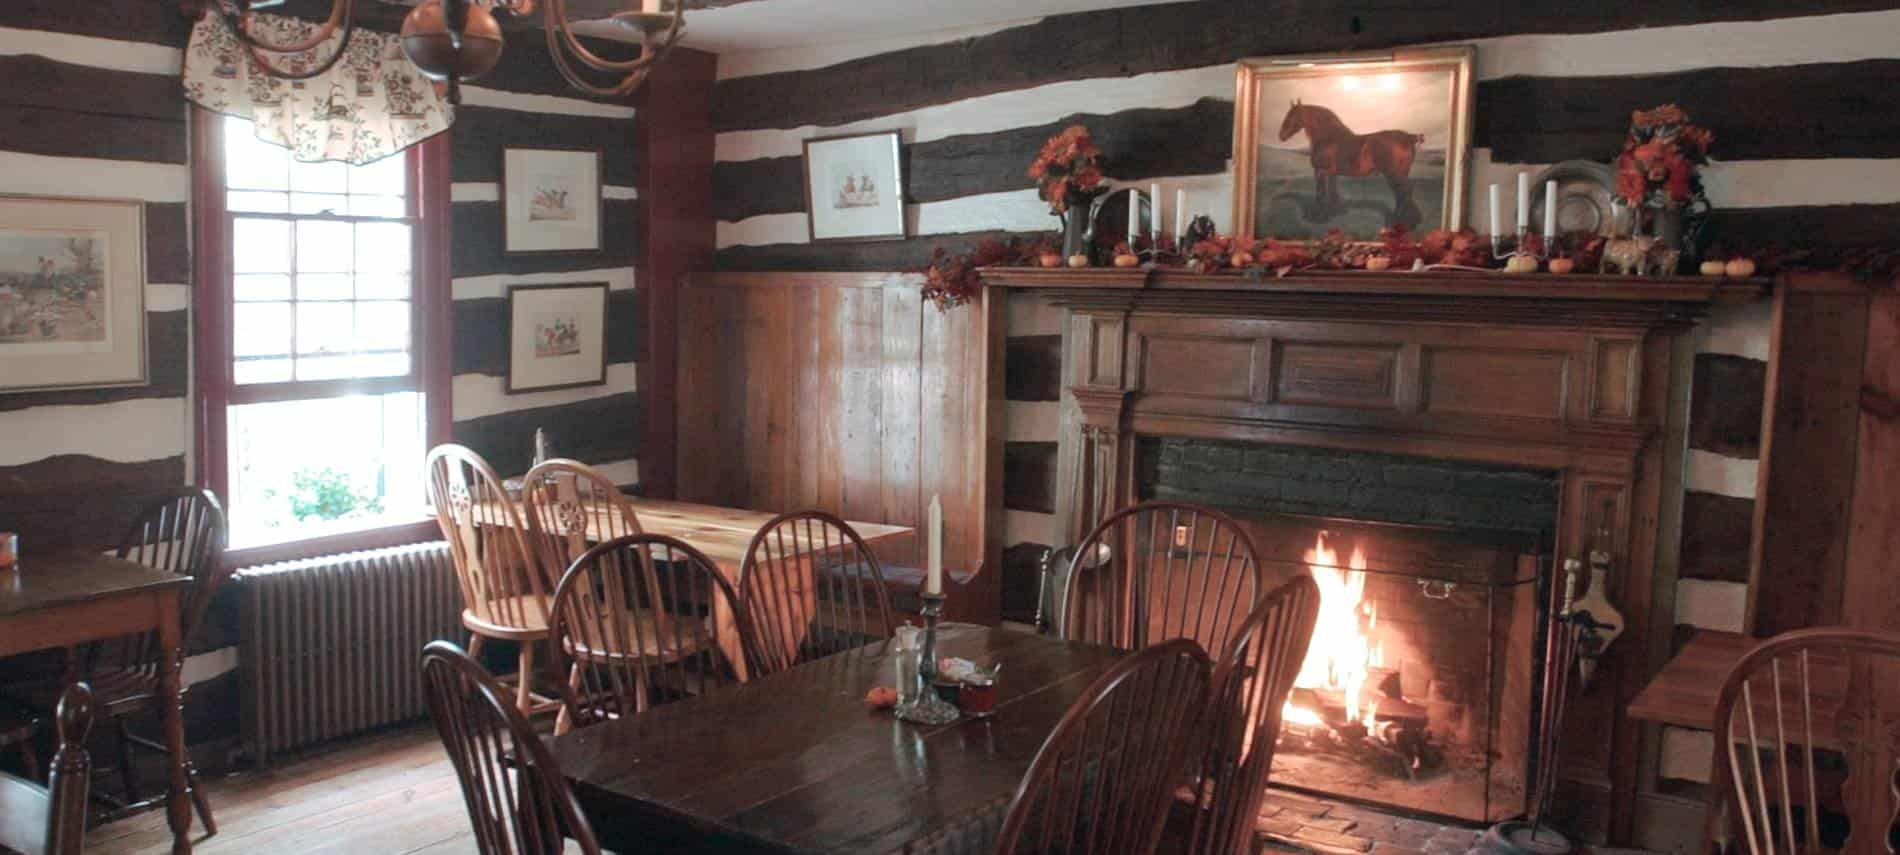 Dining area of restaurant with wooden tables and chairs next to large fireplace with dark wood mantel